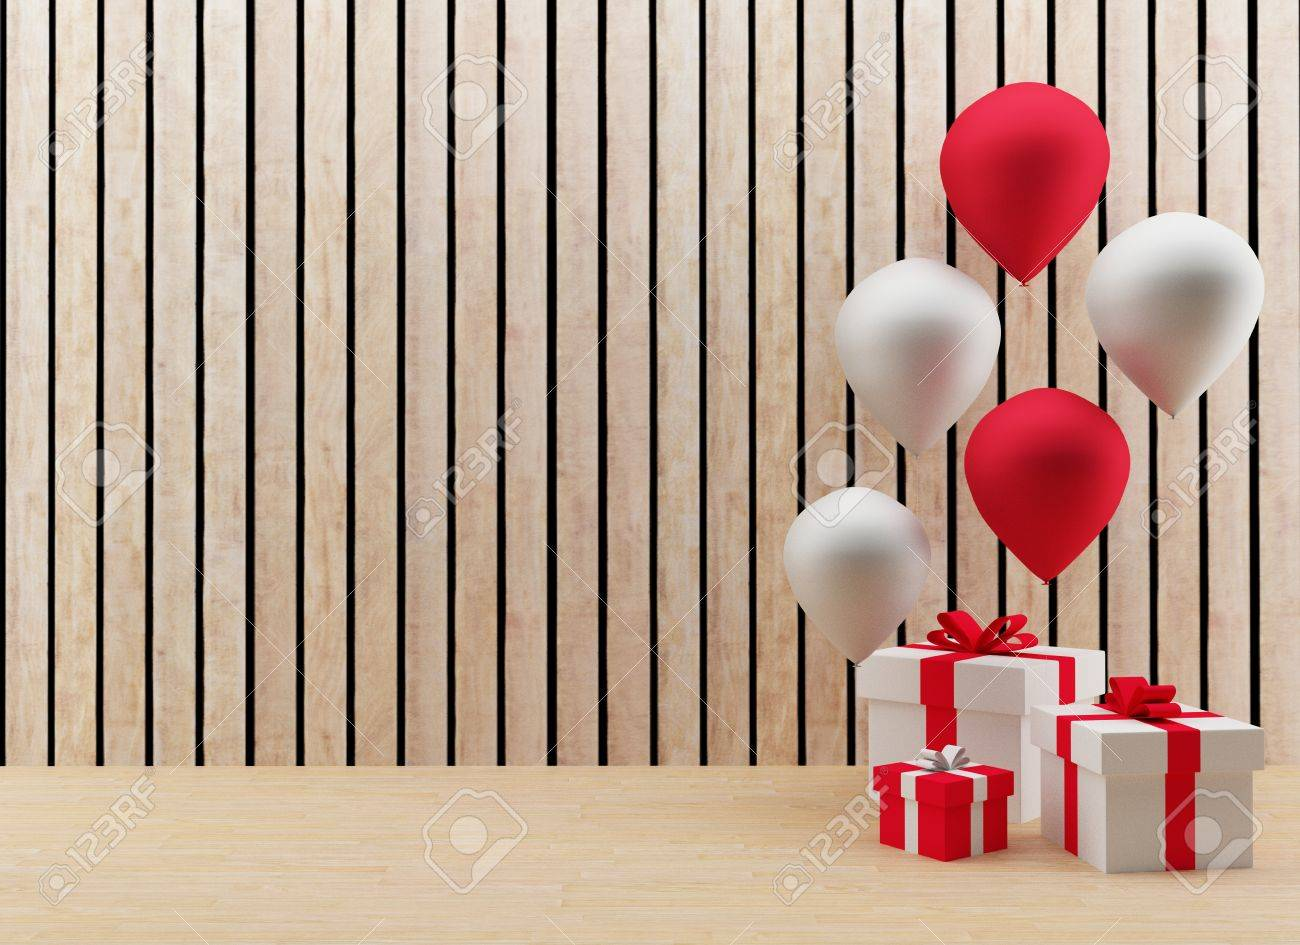 gift boxes with red and white balloons for festival and celebration in 3D render image - 72056737